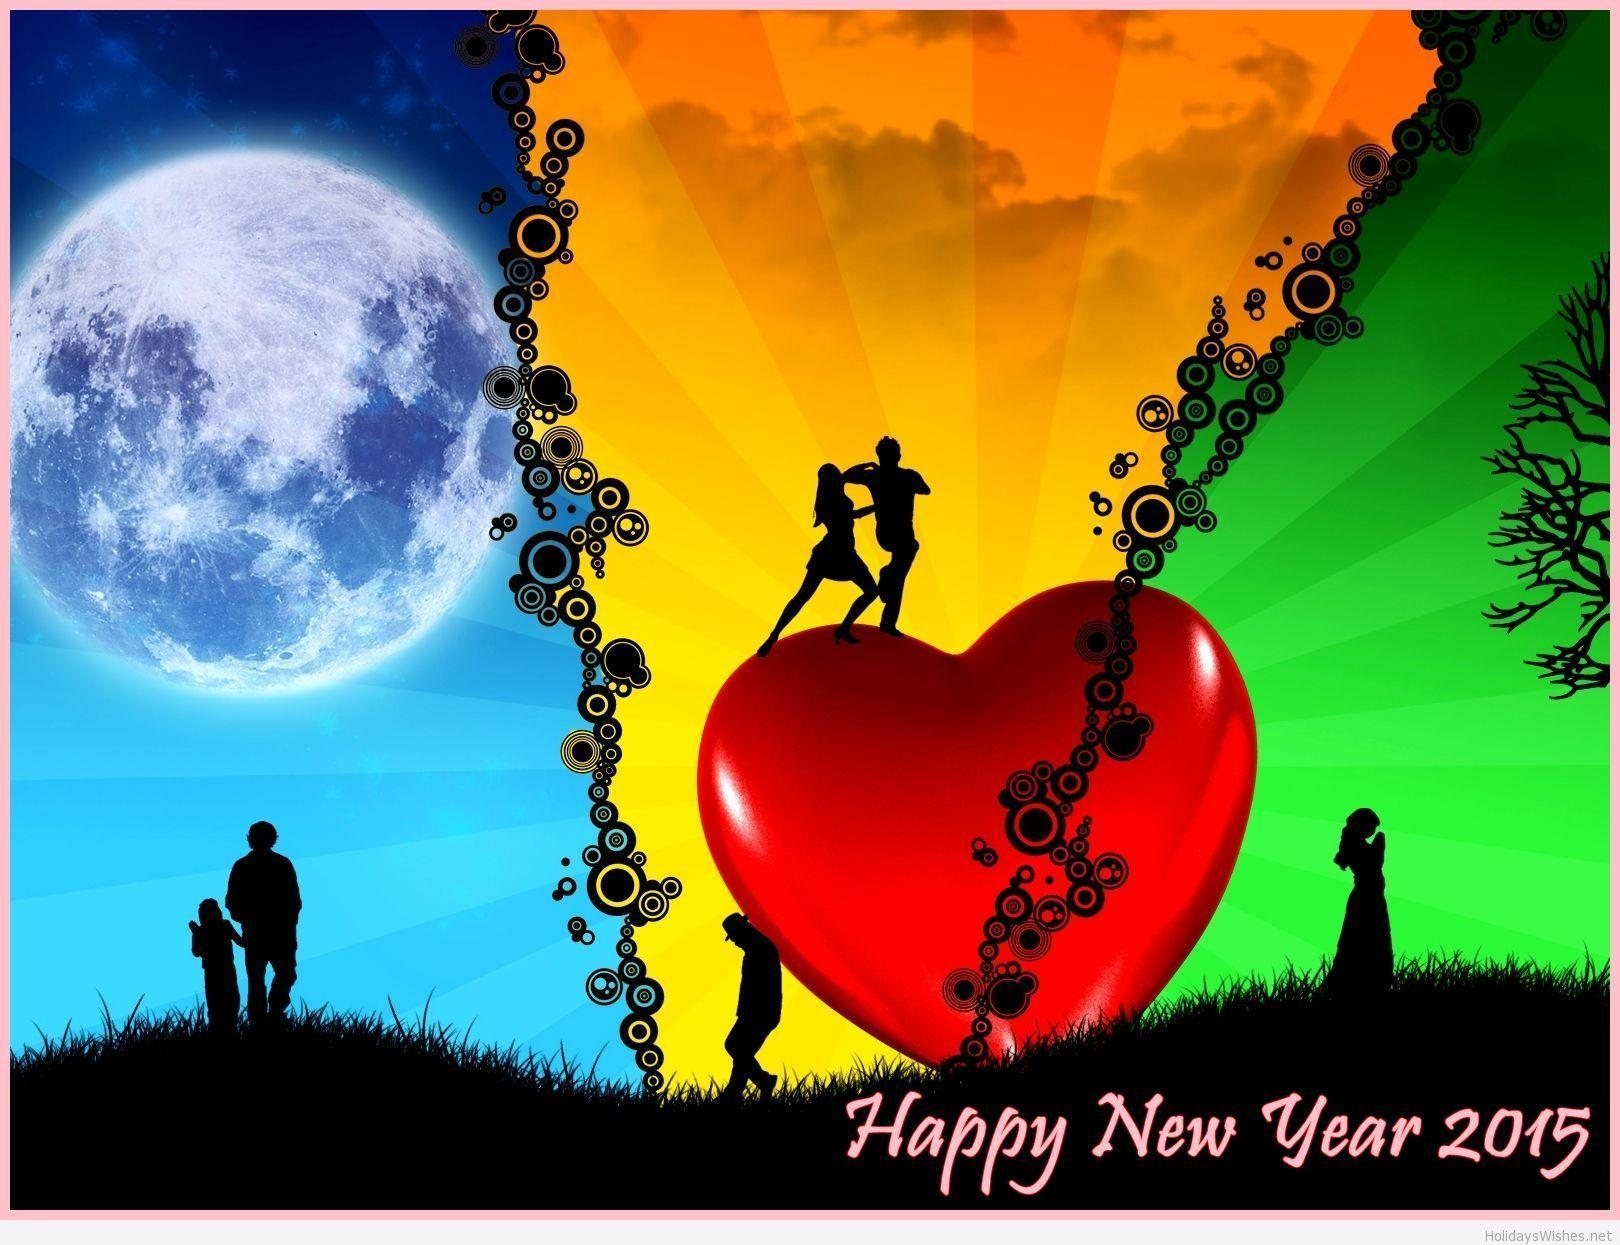 Love Wallpaper Of 2015 : New Love Image Wallpapers 2015 - Wallpaper cave